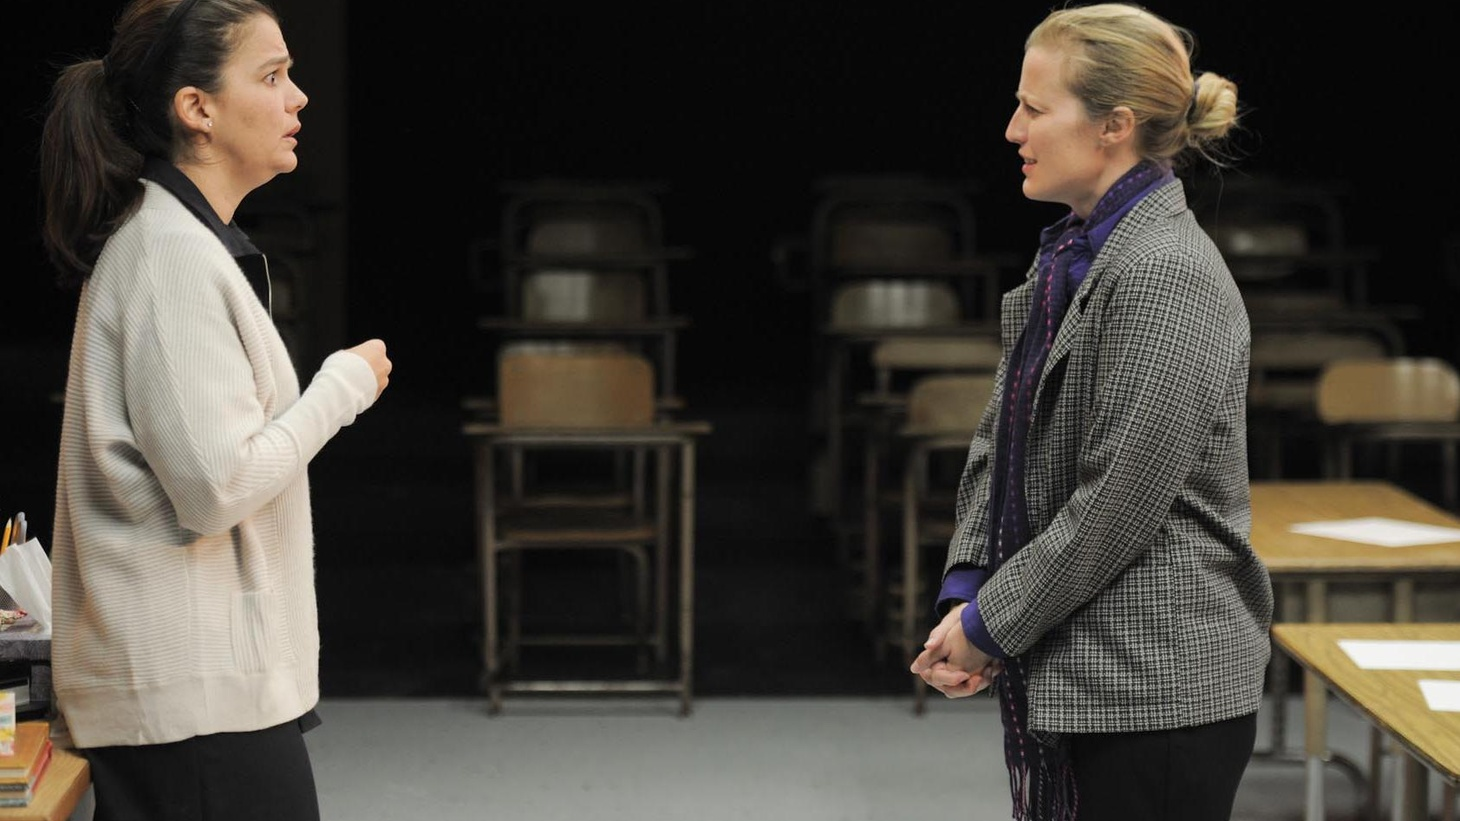 """Furious Theater Company transforms the intimate, upstairs theater at the Pasadena Playhouse into a classroom for their production of """"Gidion's Knot."""""""